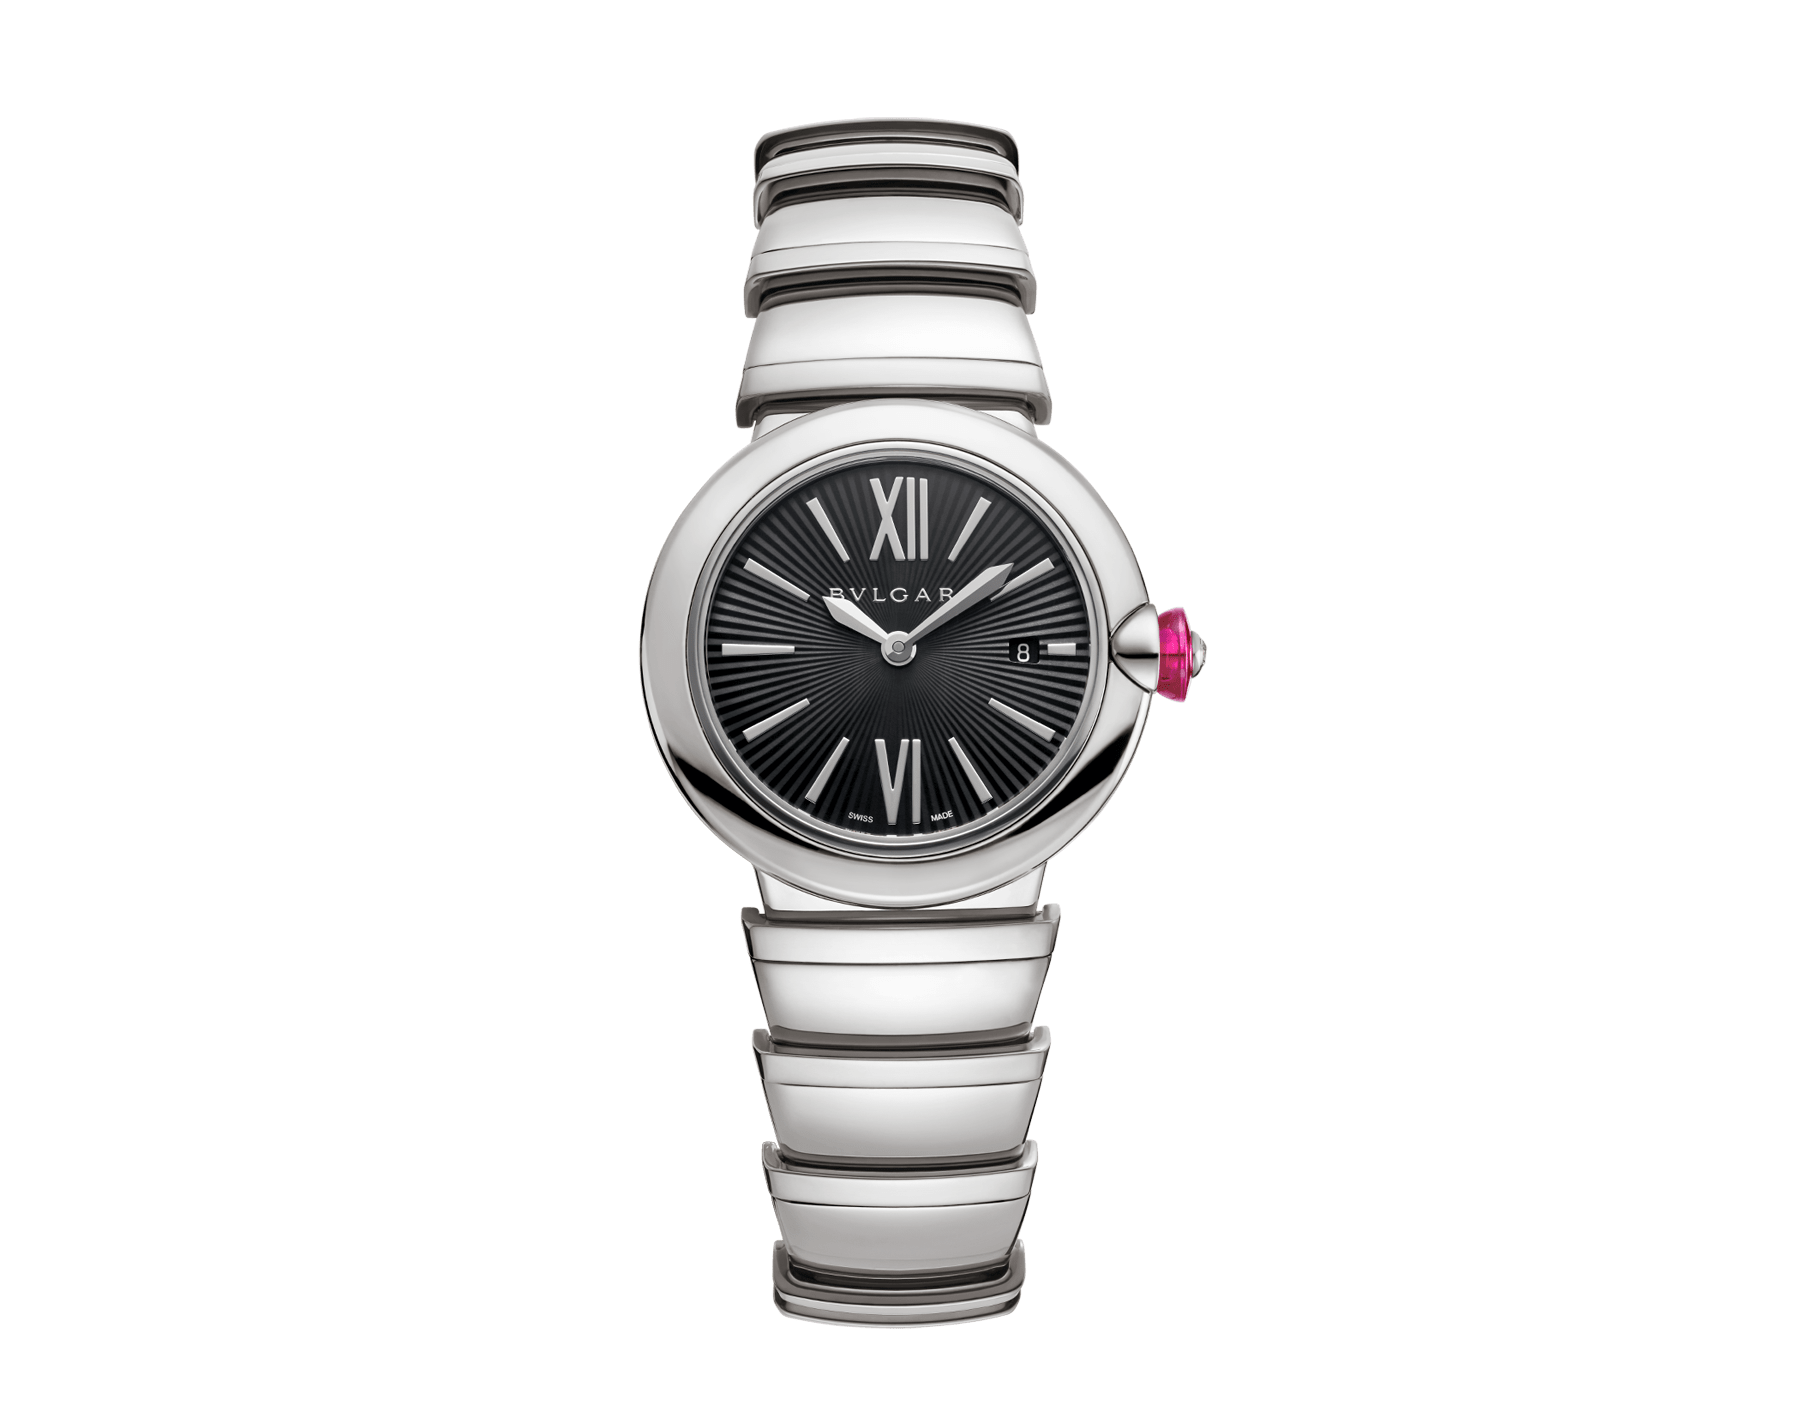 LVCEA watch in stainless steel case and bracelet, with black dial. 102690 image 1